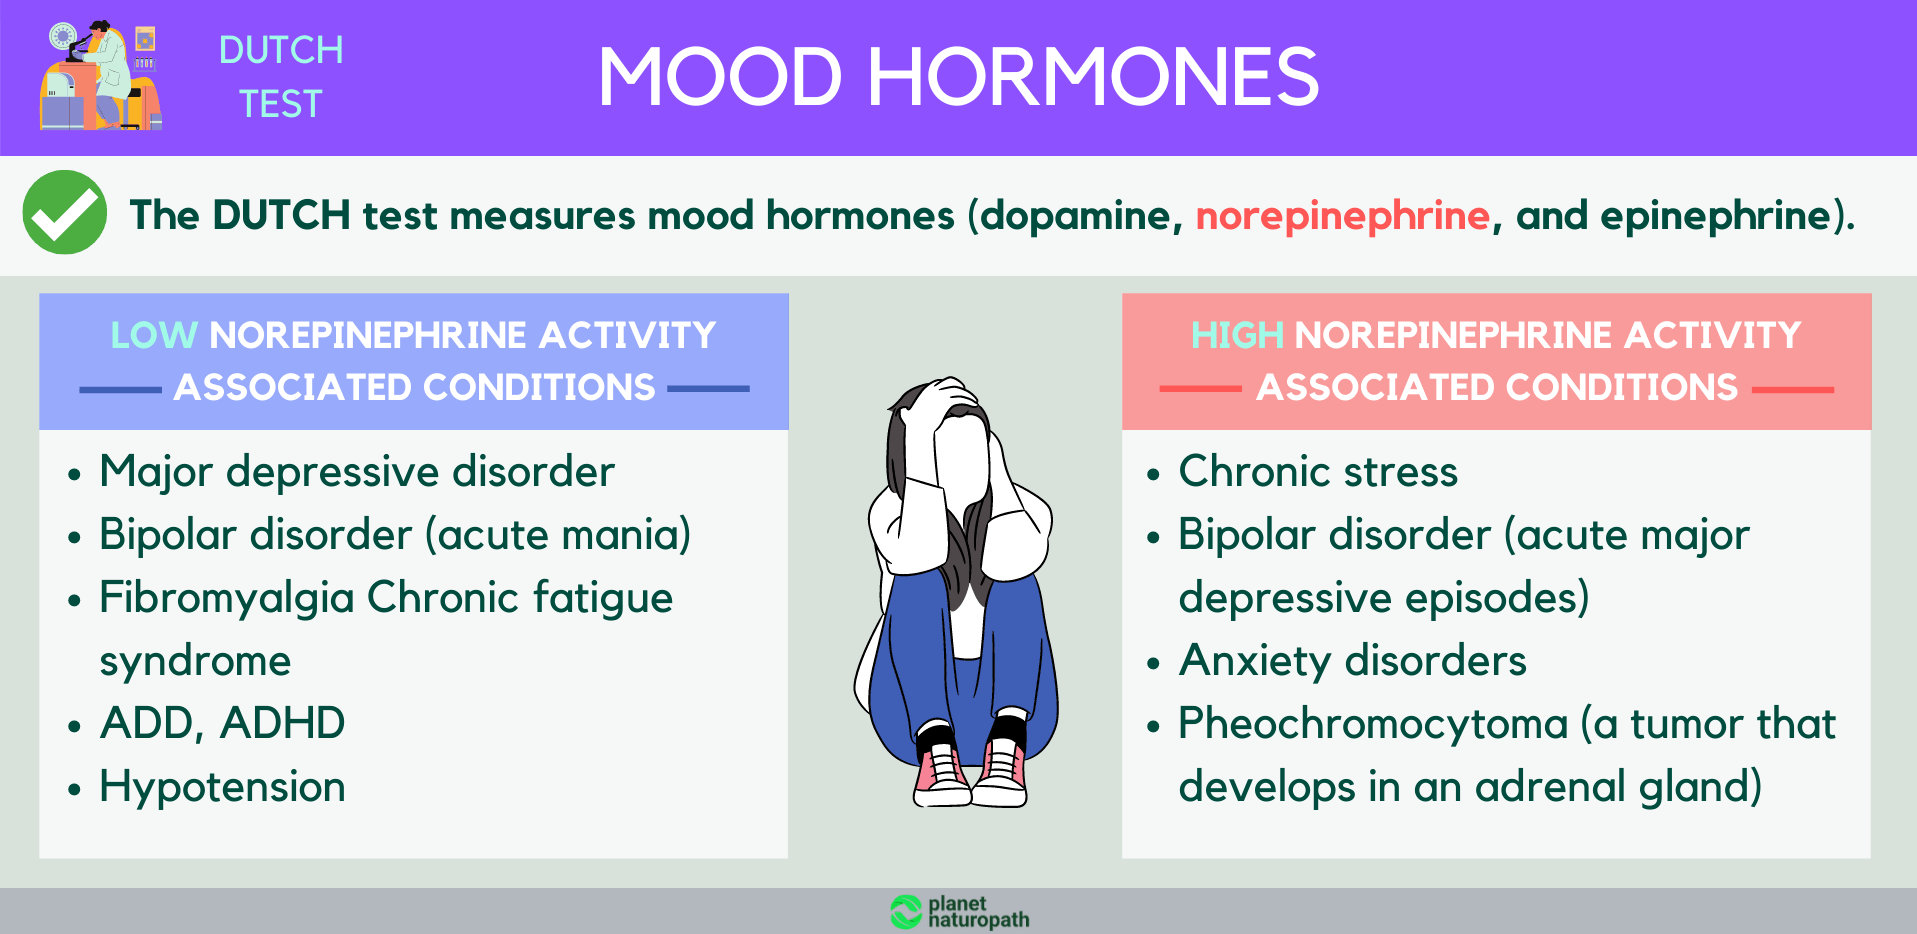 DUTCH-Test-and-mood-hormones